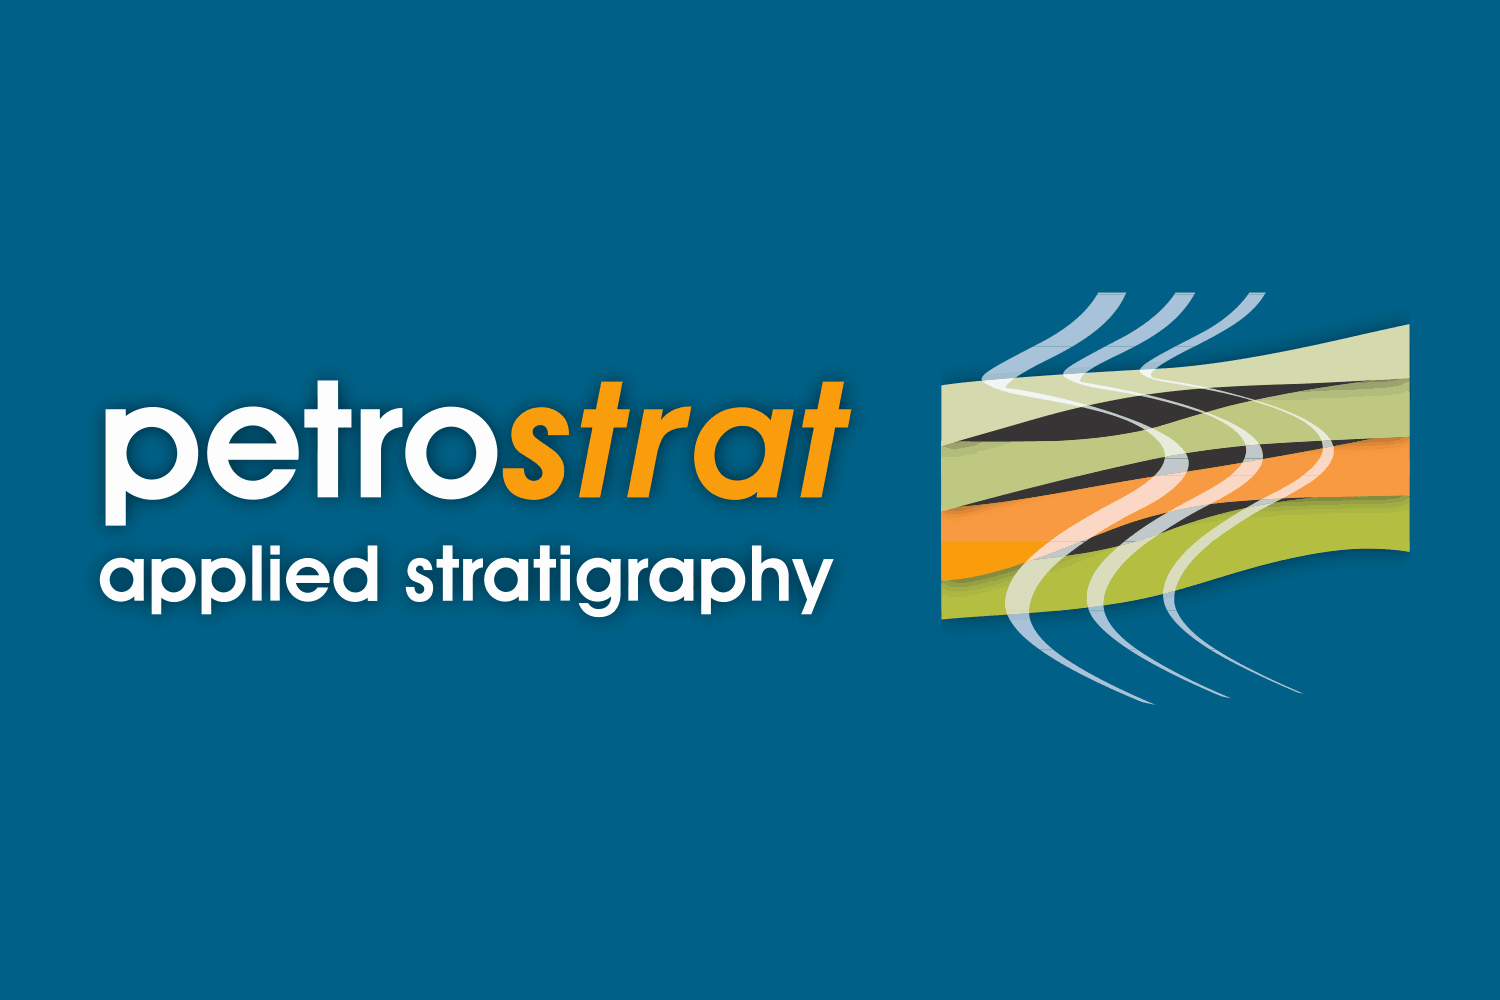 PetroStrat Ltd Applied Stratigraphy 1500x1000 Logo Placeholder